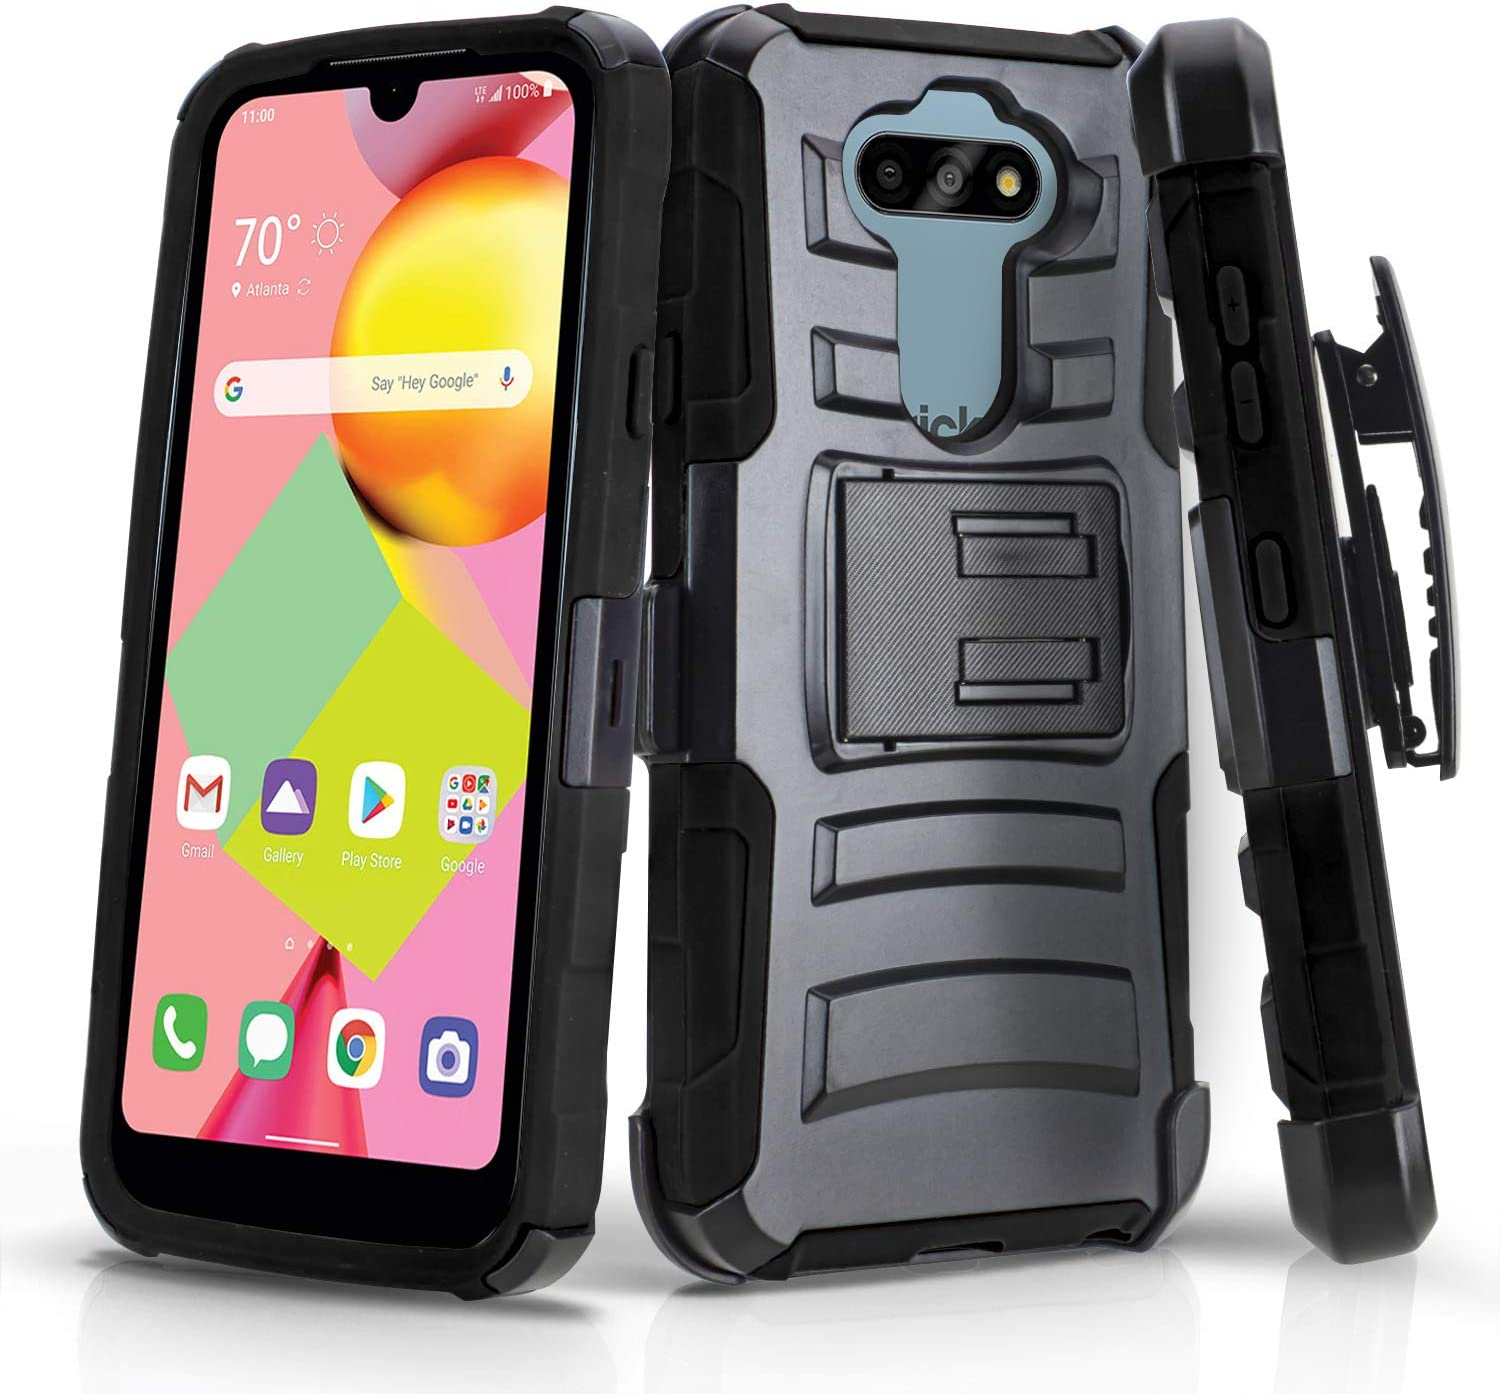 CasemartUSA Phone Case for [LG Risio 4 (Cricket Wireless)], [Refined Series][Black] Shockproof Protective Cover with Built-in Kickstand & Swivel Belt Clip Holster for LG Risio 4 (Cricket Wireless)